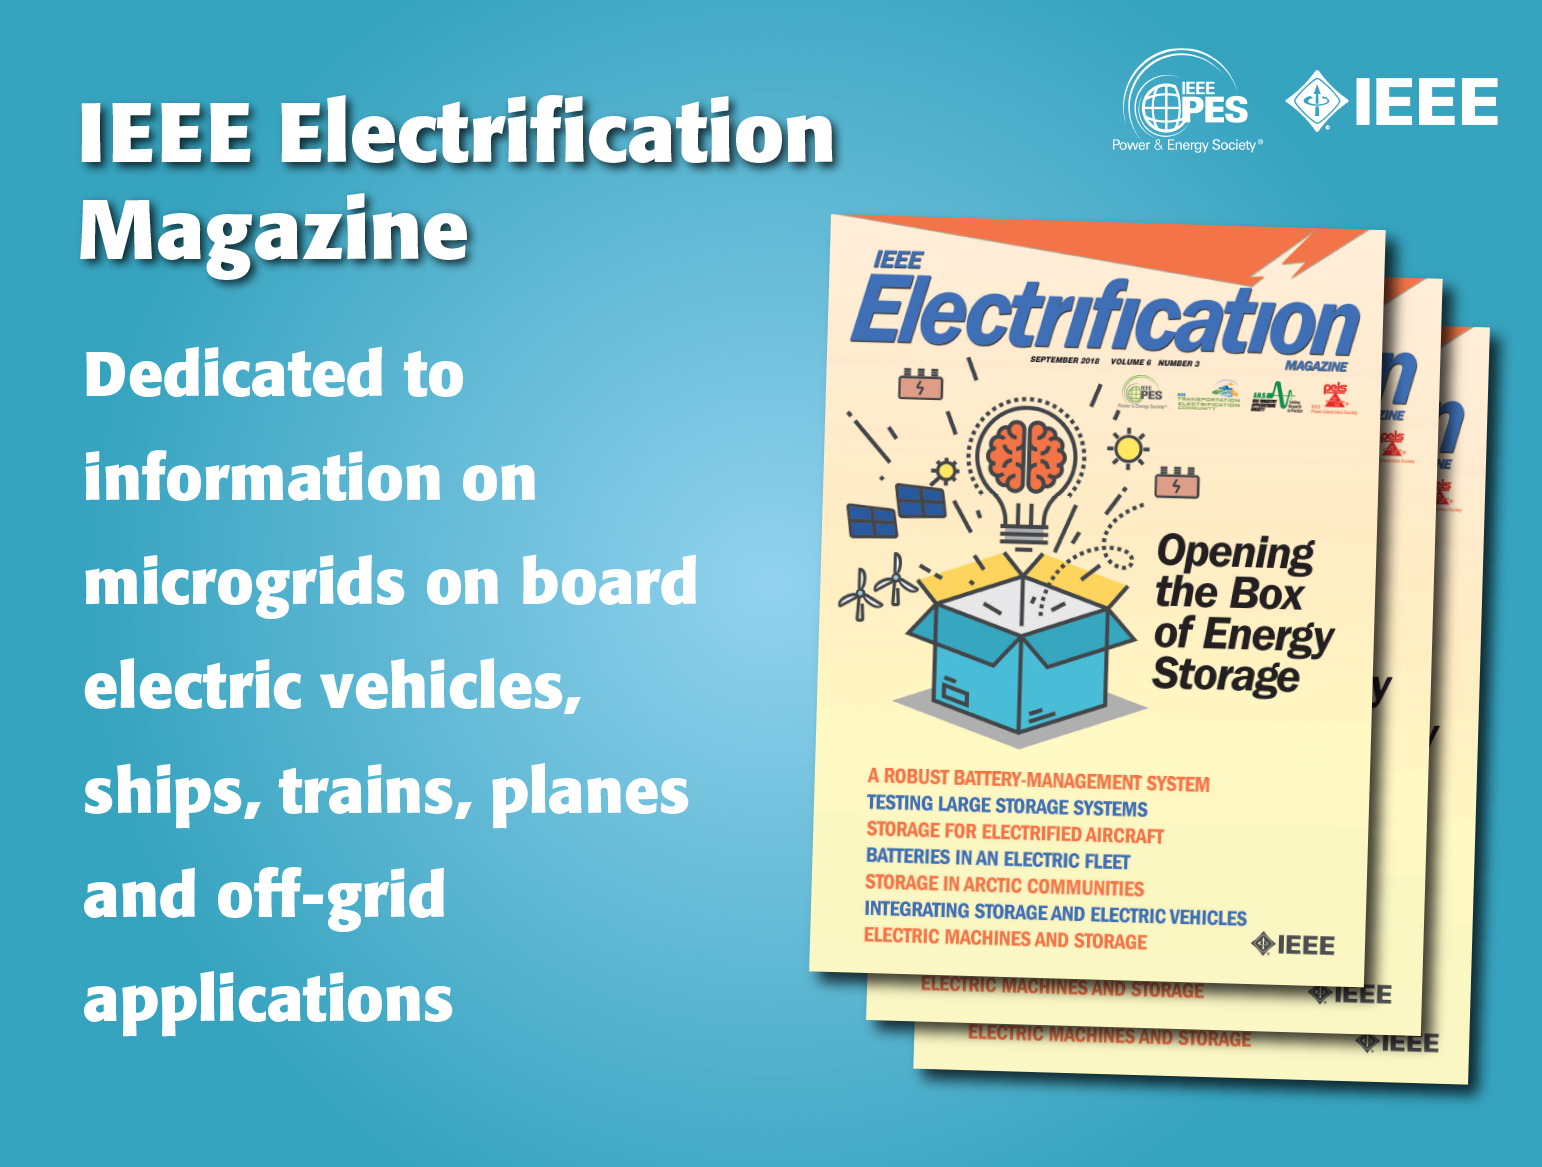 IEEE Electrification Magazine